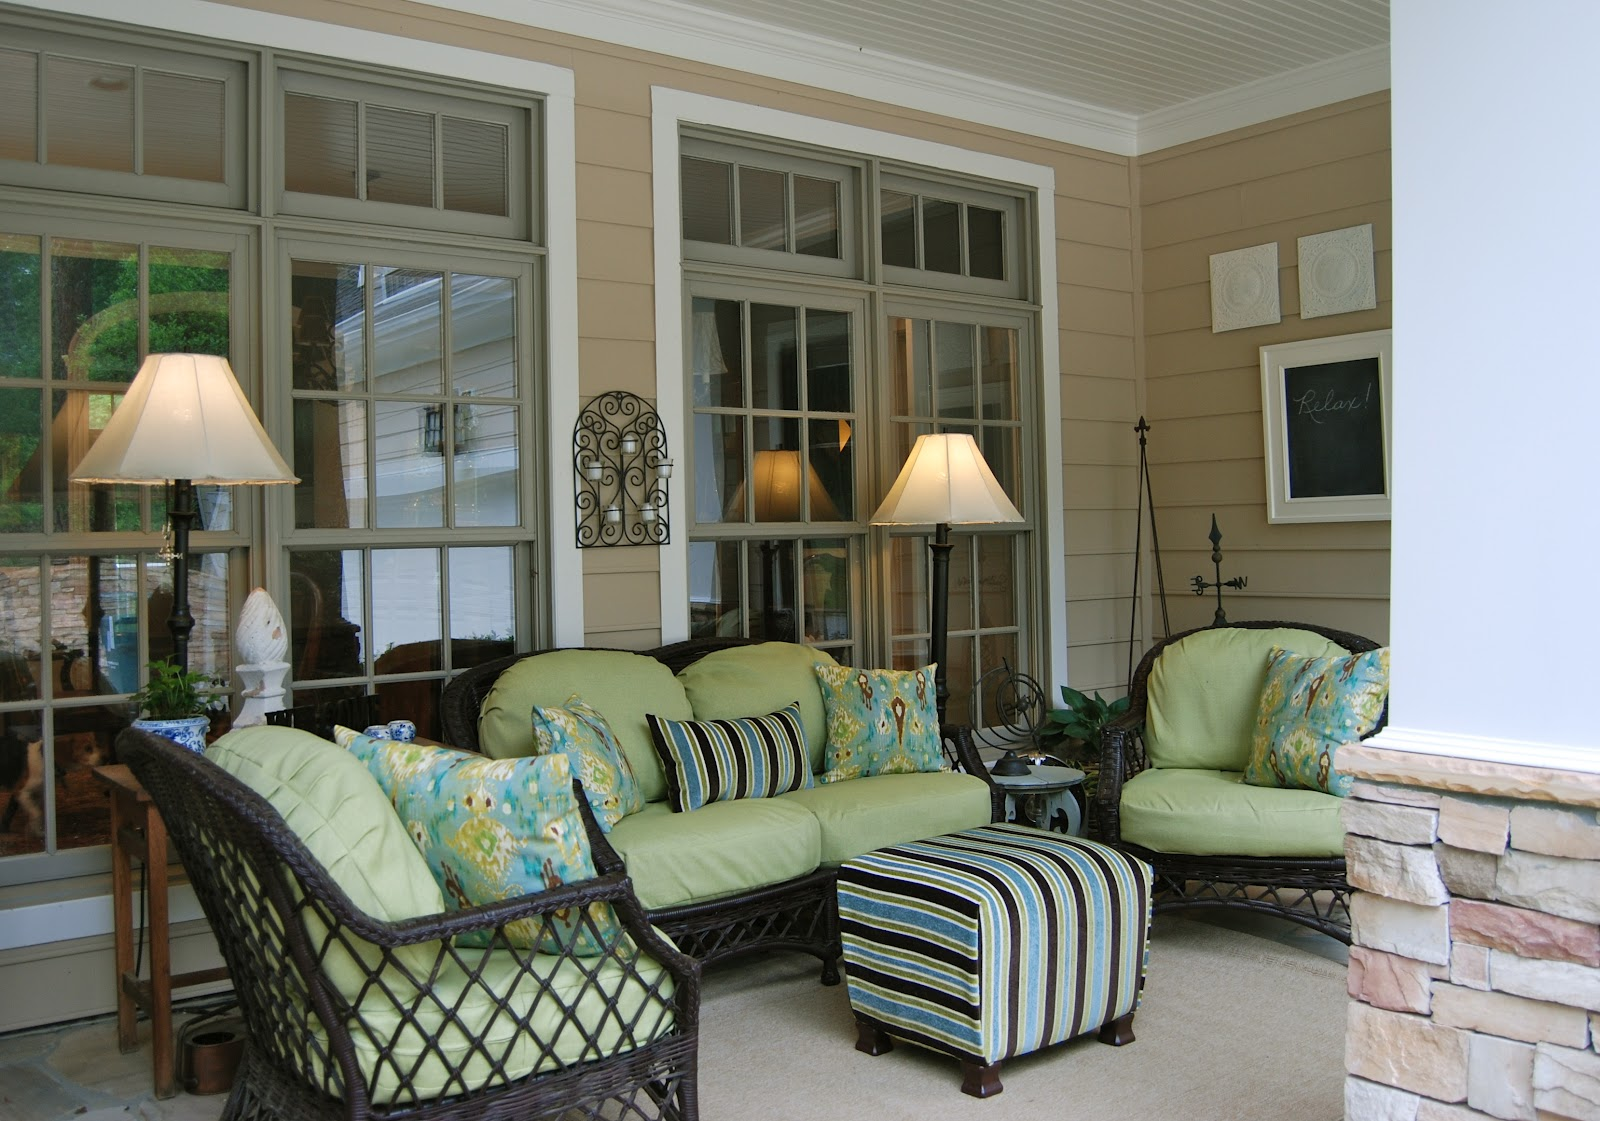 wicker furniture decorating ideas. Wicker Furniture For A Front Porch Decorating Ideas H